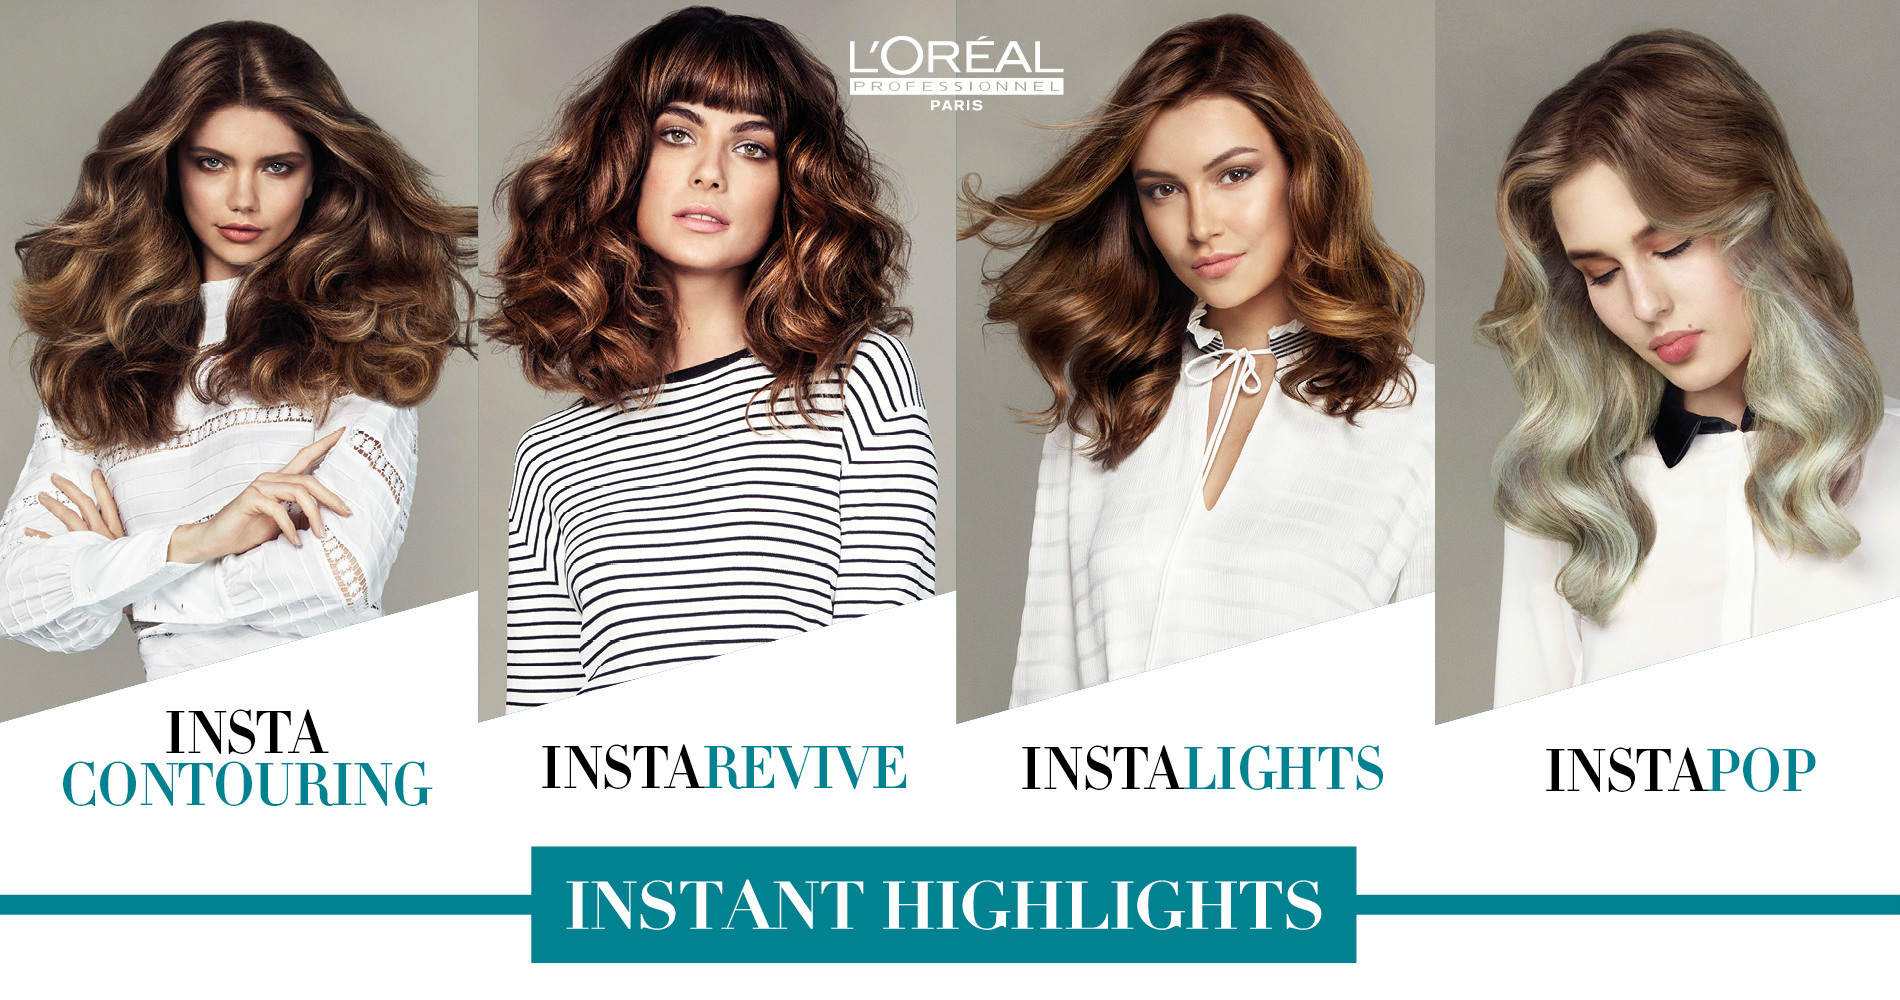 L'Oreal Instant Highlights